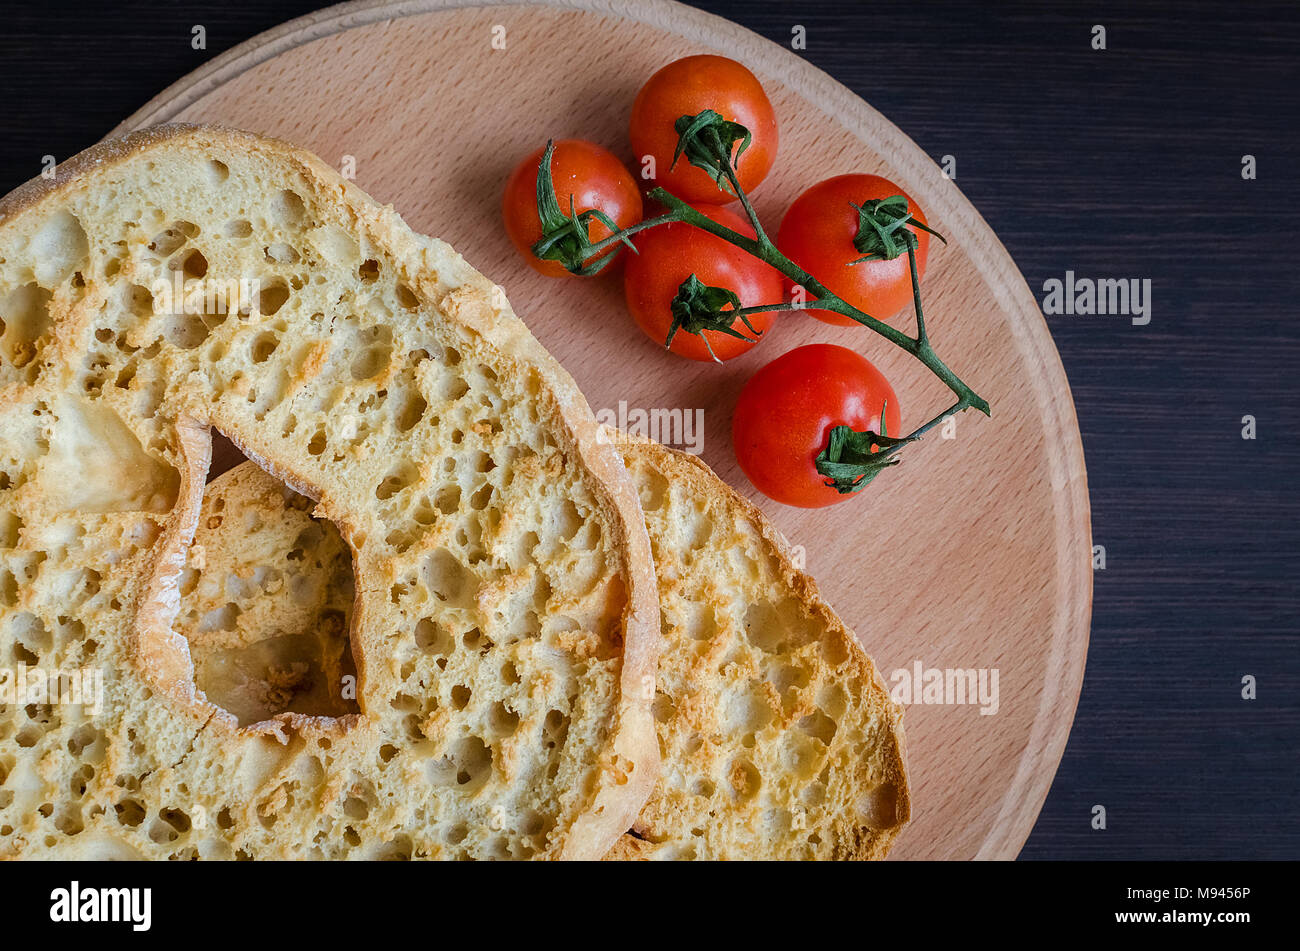 Italian dried bread Friselle on wooden board with tomatoes cherry. Italian food. Healthy vegetarian food. - Stock Image